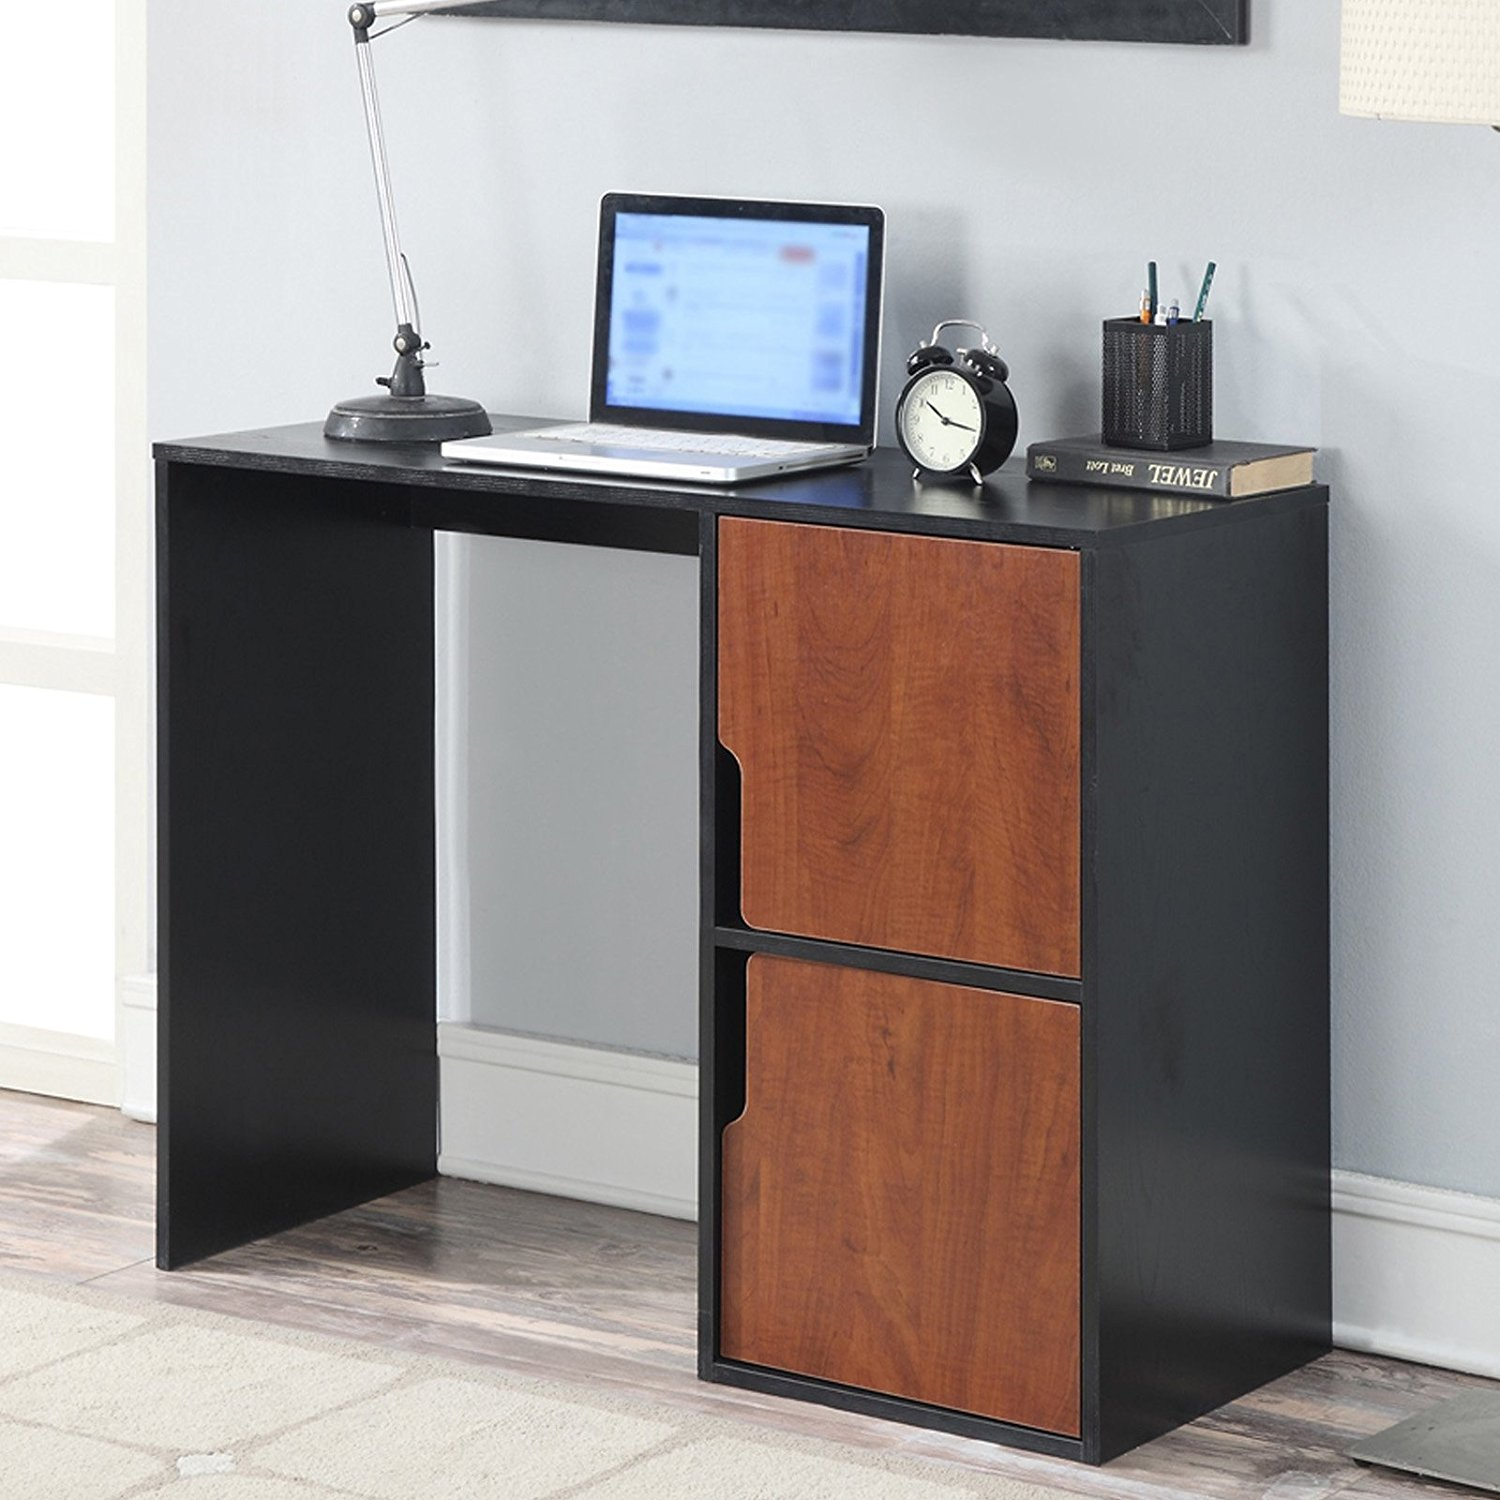 Get Quotations · Cherry Black Student Desk Residential Desks For Bedroom  Furniture School Work Small Study College Students With